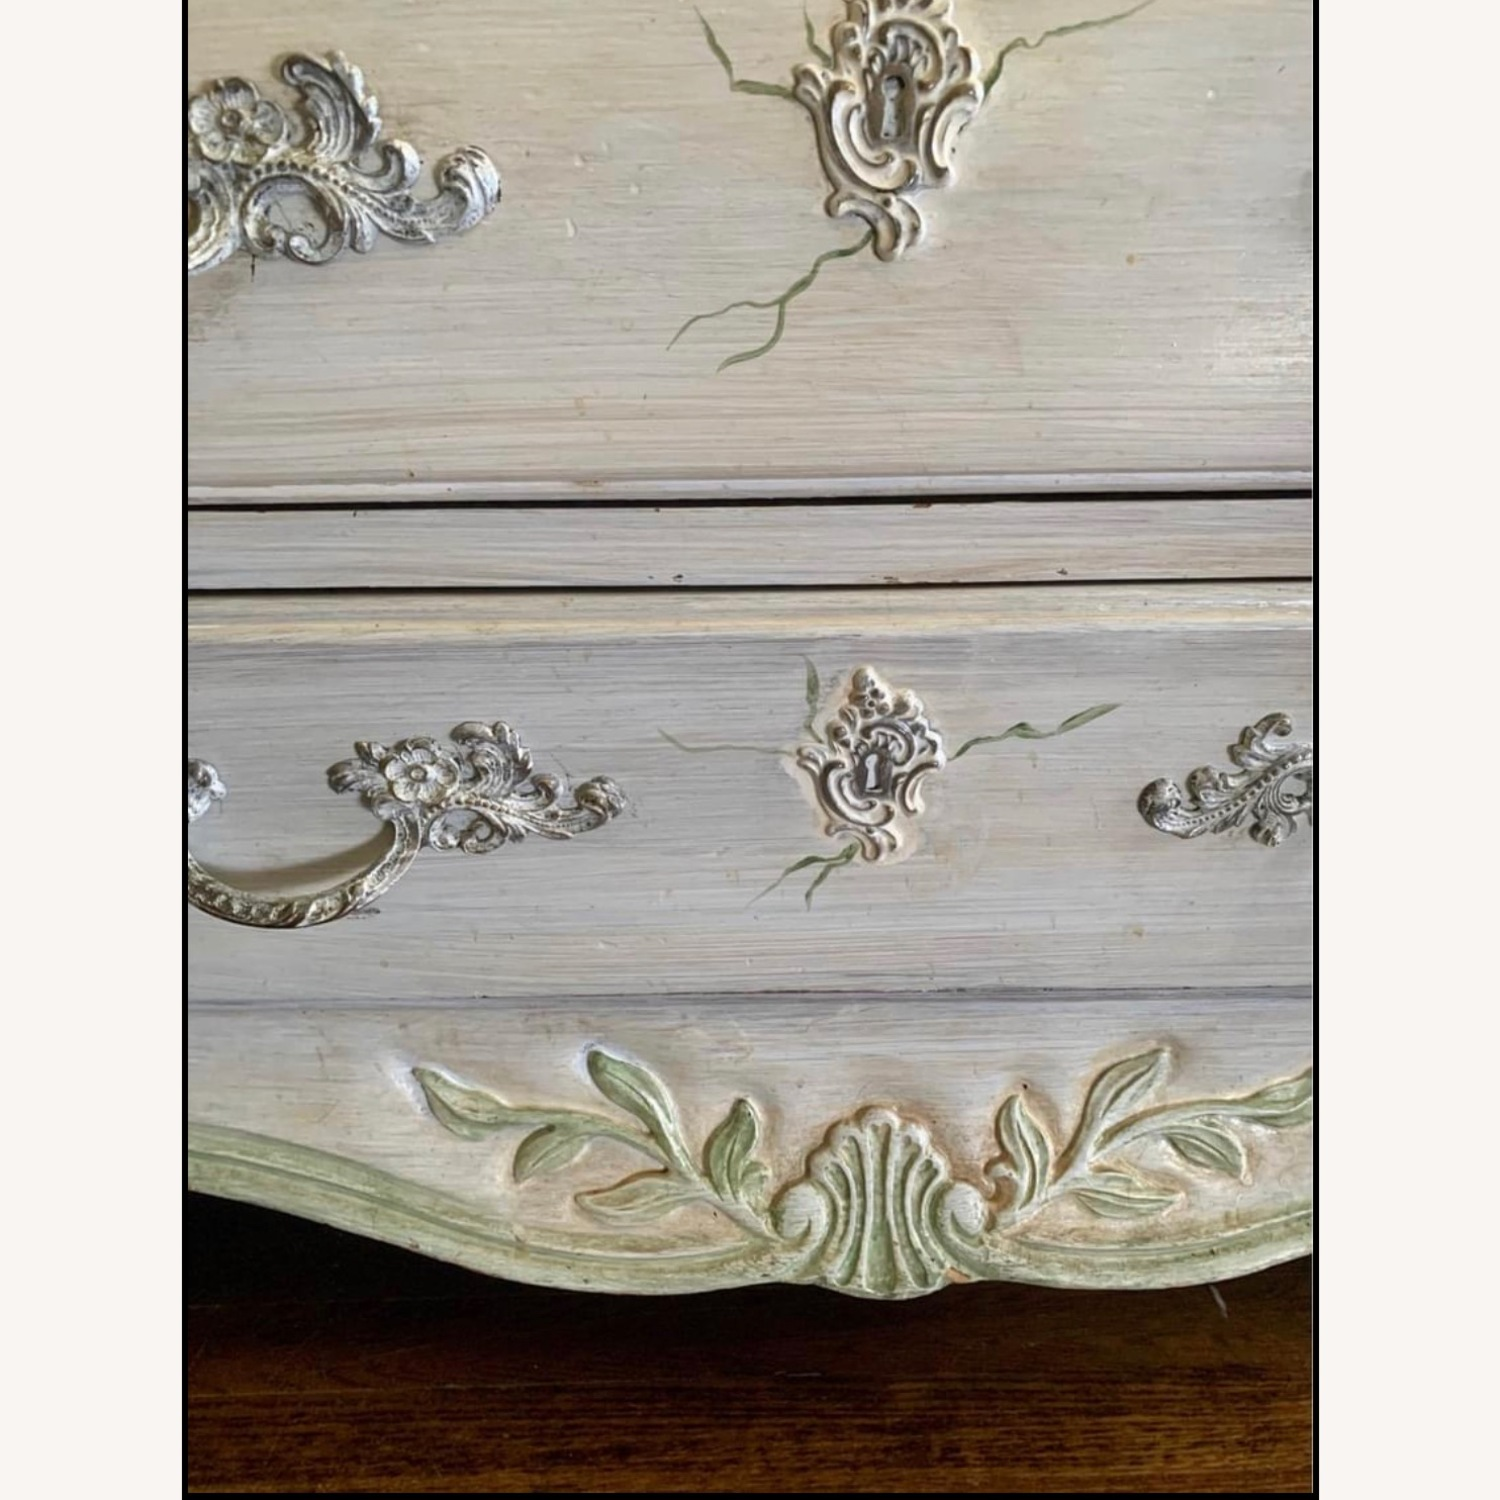 Hand Painted High Quality Nightstands - image-3